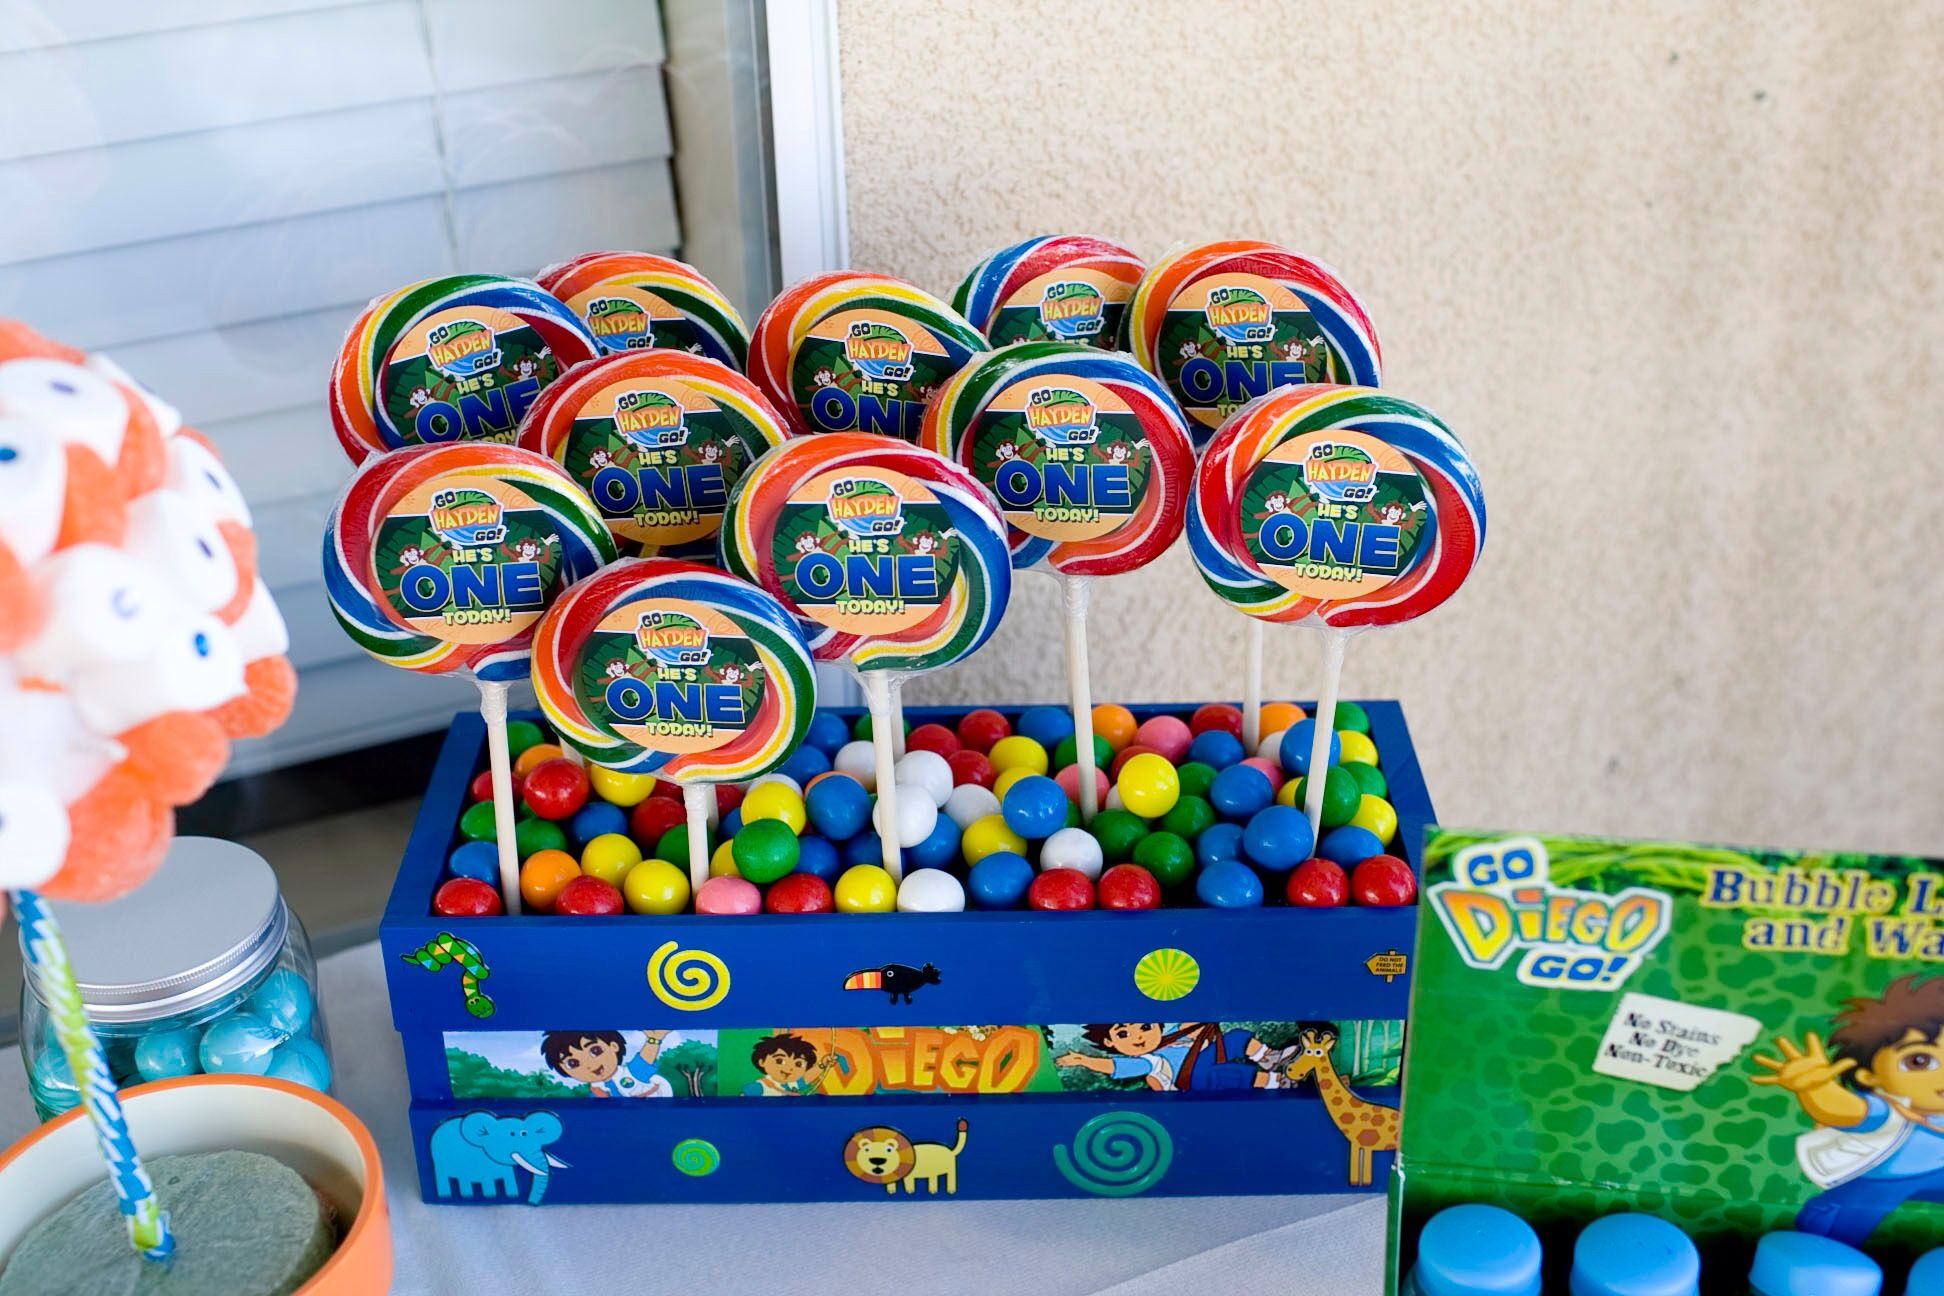 Go Diego Go Birthday Party Favors